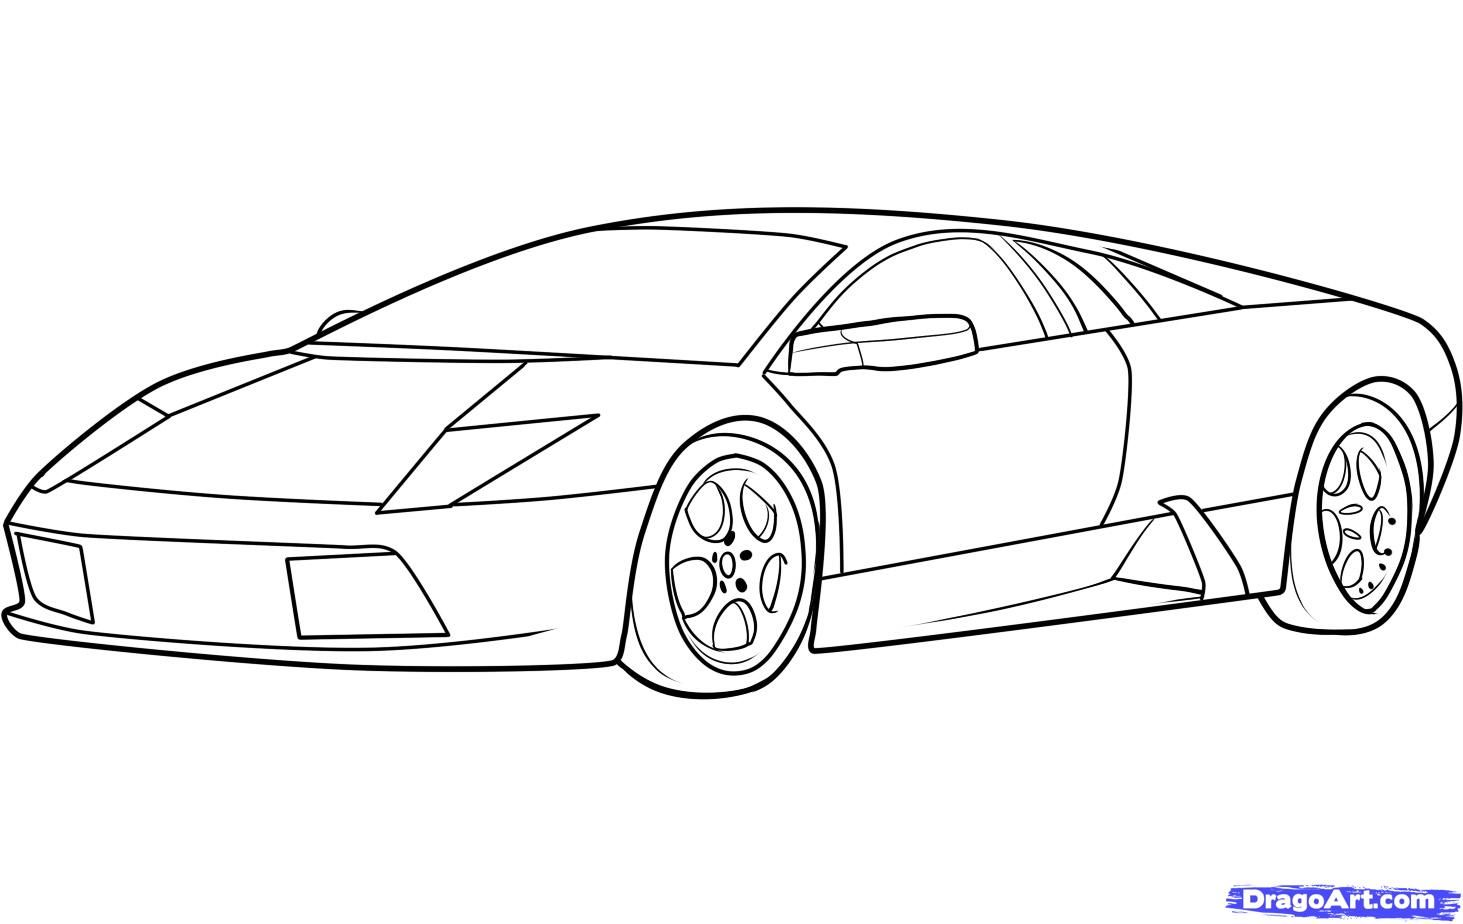 How to Draw Lamborghini Drawings | l | Pinterest